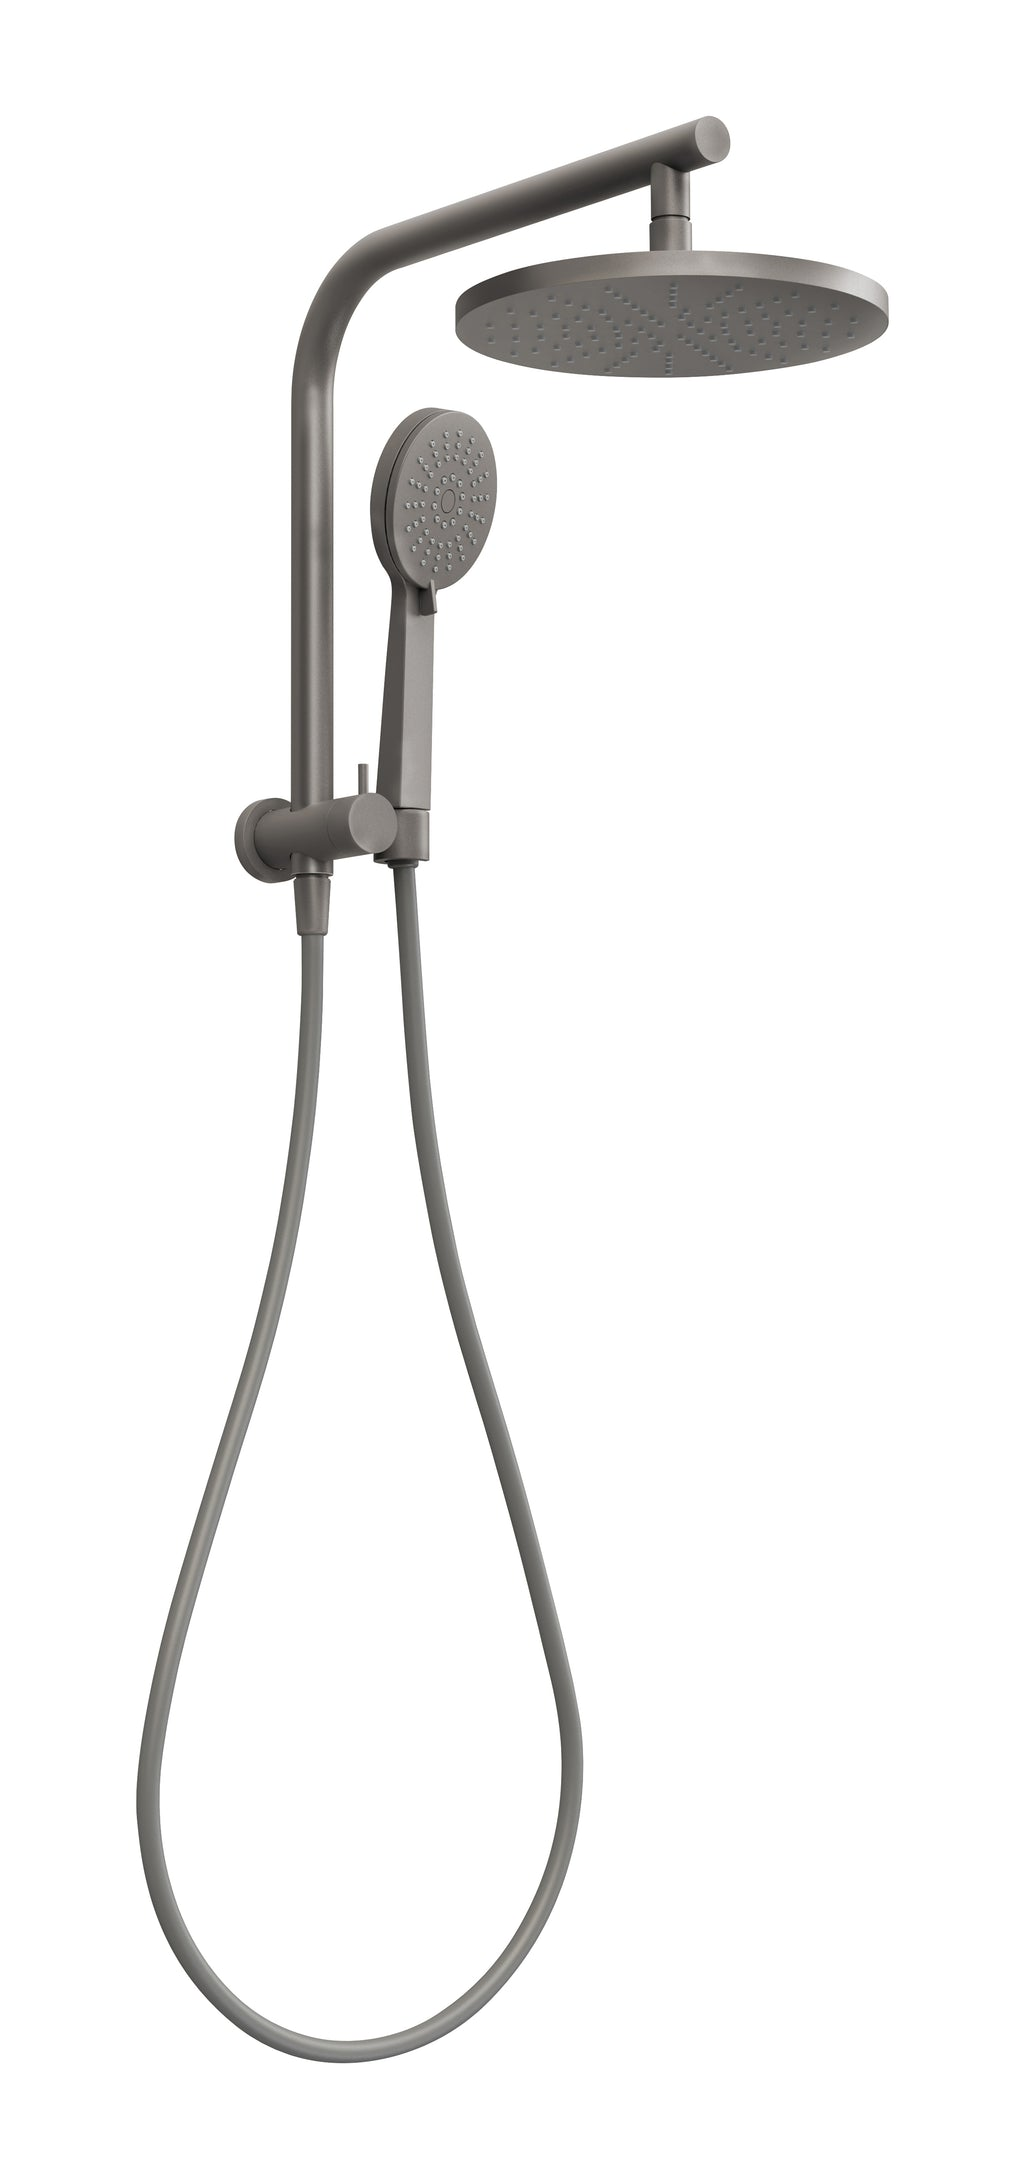 Vivid Slimline Compact Twin Shower (Gun Metal)